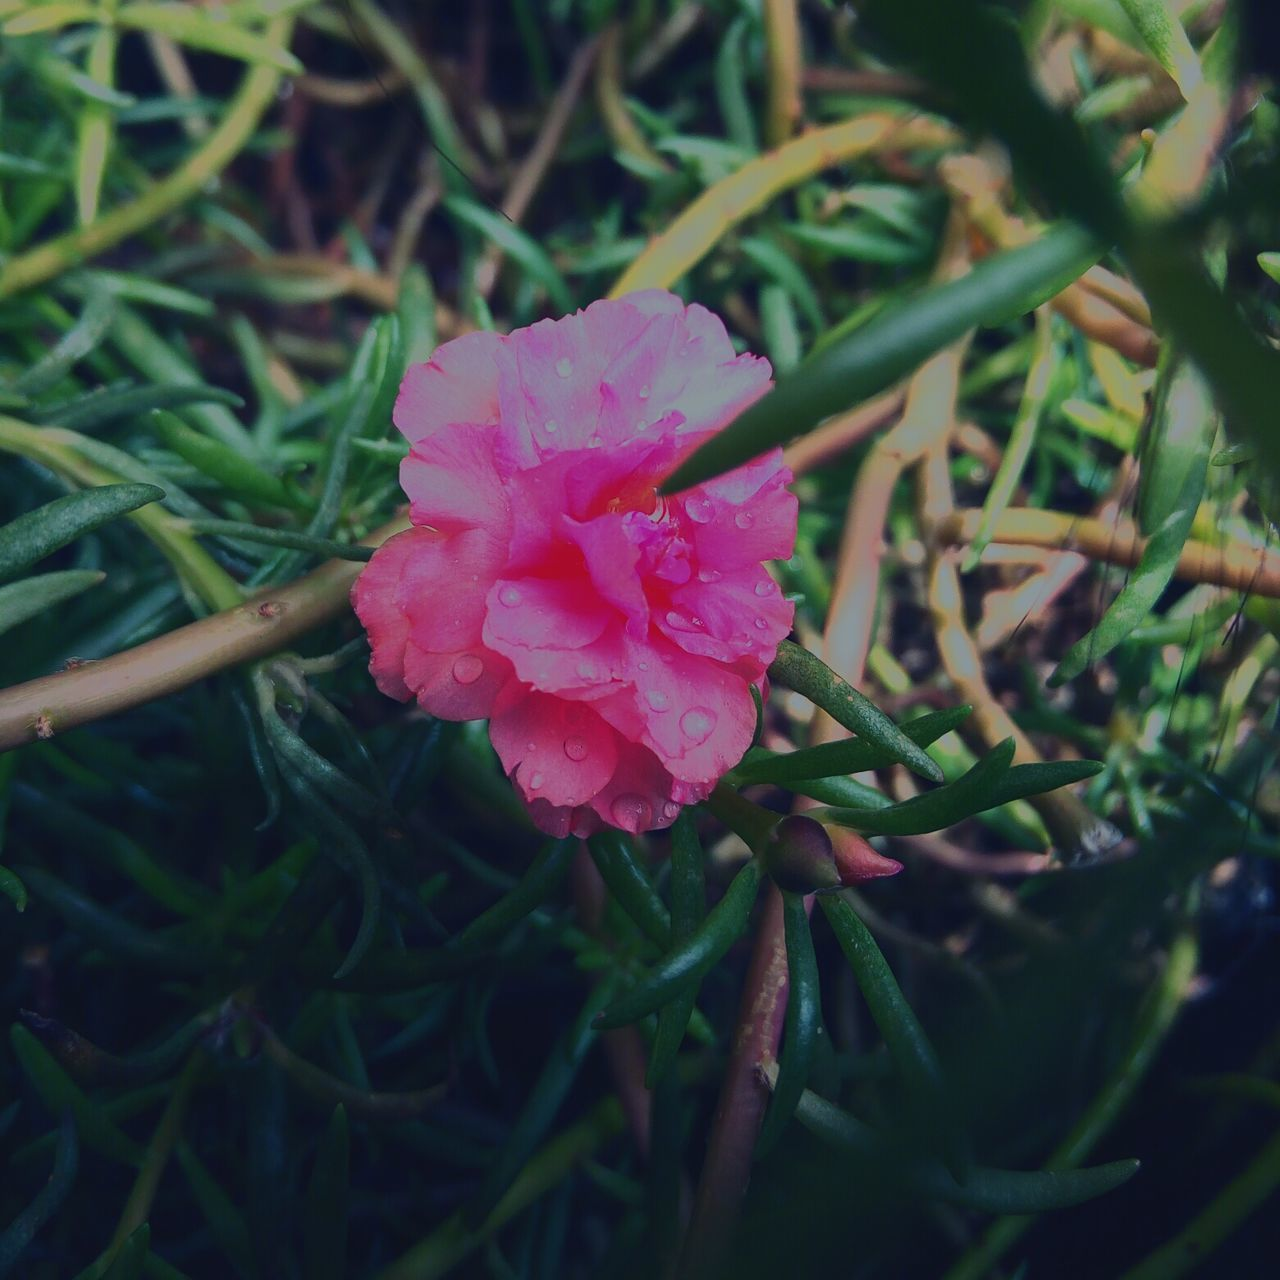 flower, nature, beauty in nature, pink color, petal, growth, plant, fragility, drop, wet, green color, outdoors, no people, flower head, day, freshness, blooming, water, close-up